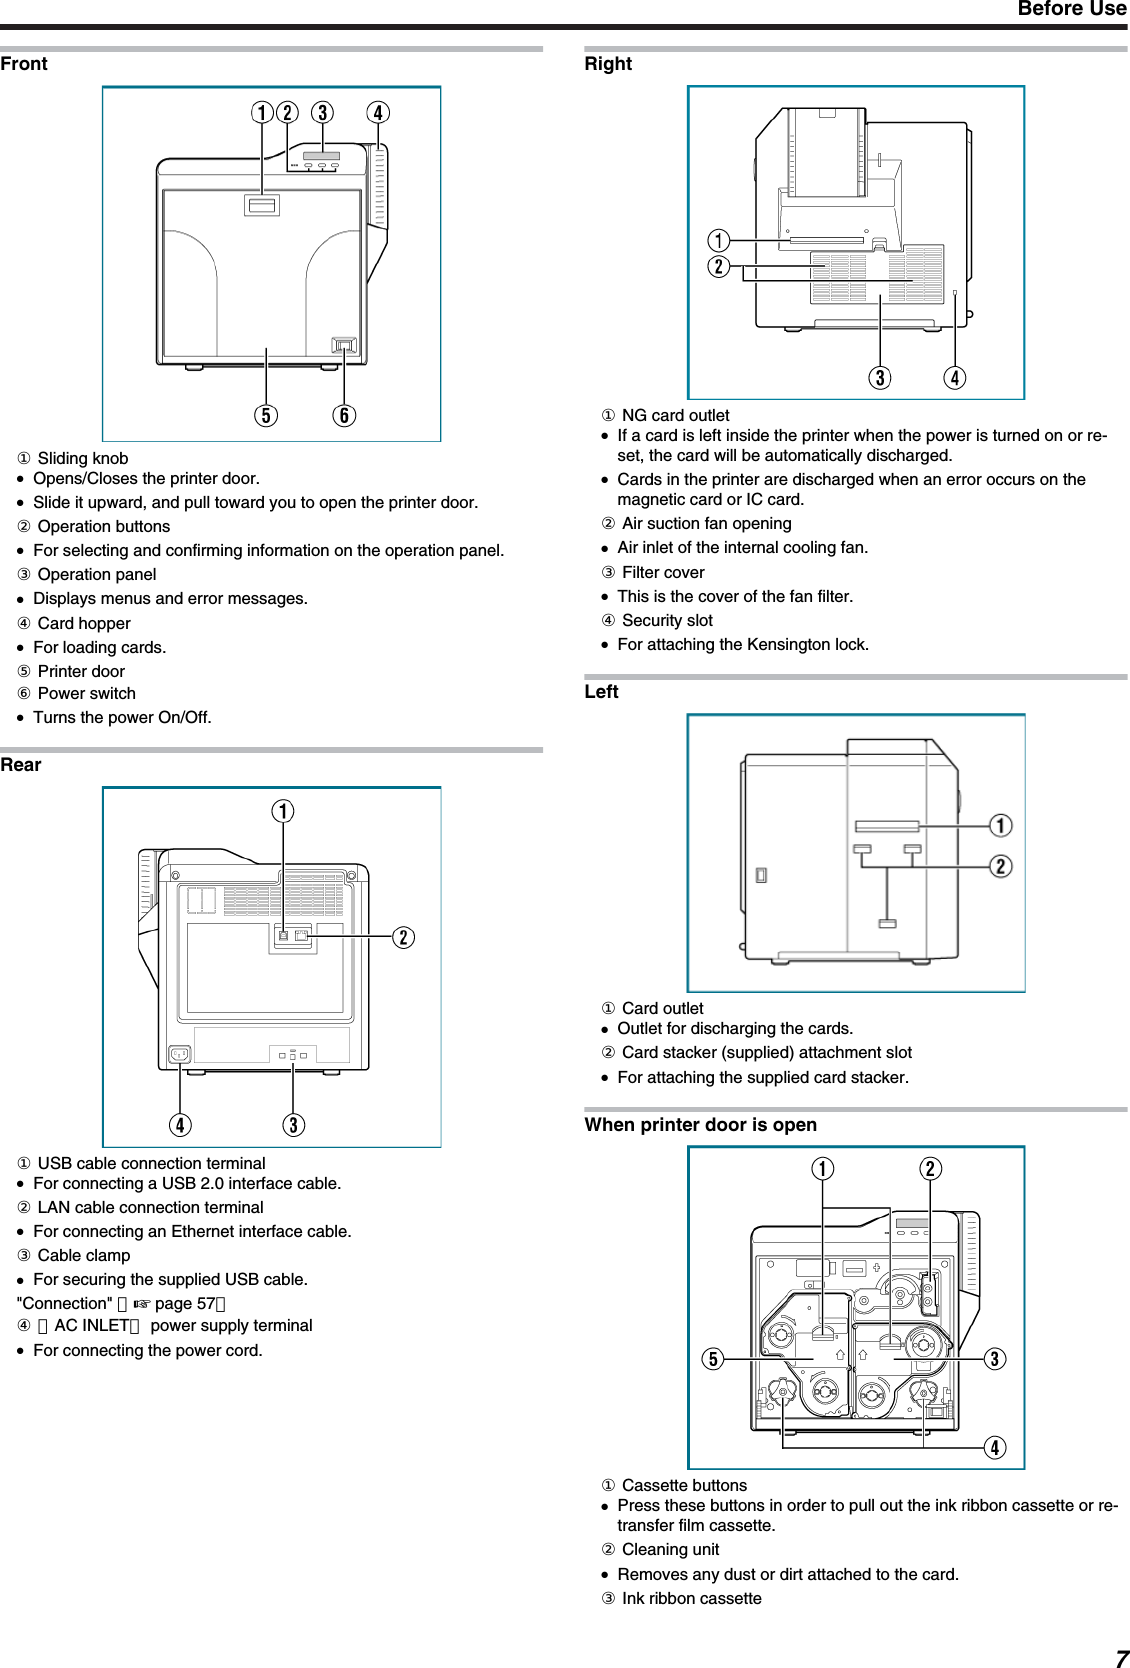 1996 Camaro Vats Wiring Diagram Opinions About 1993 Lt1 Vss Engine Test Stand Elsalvadorla